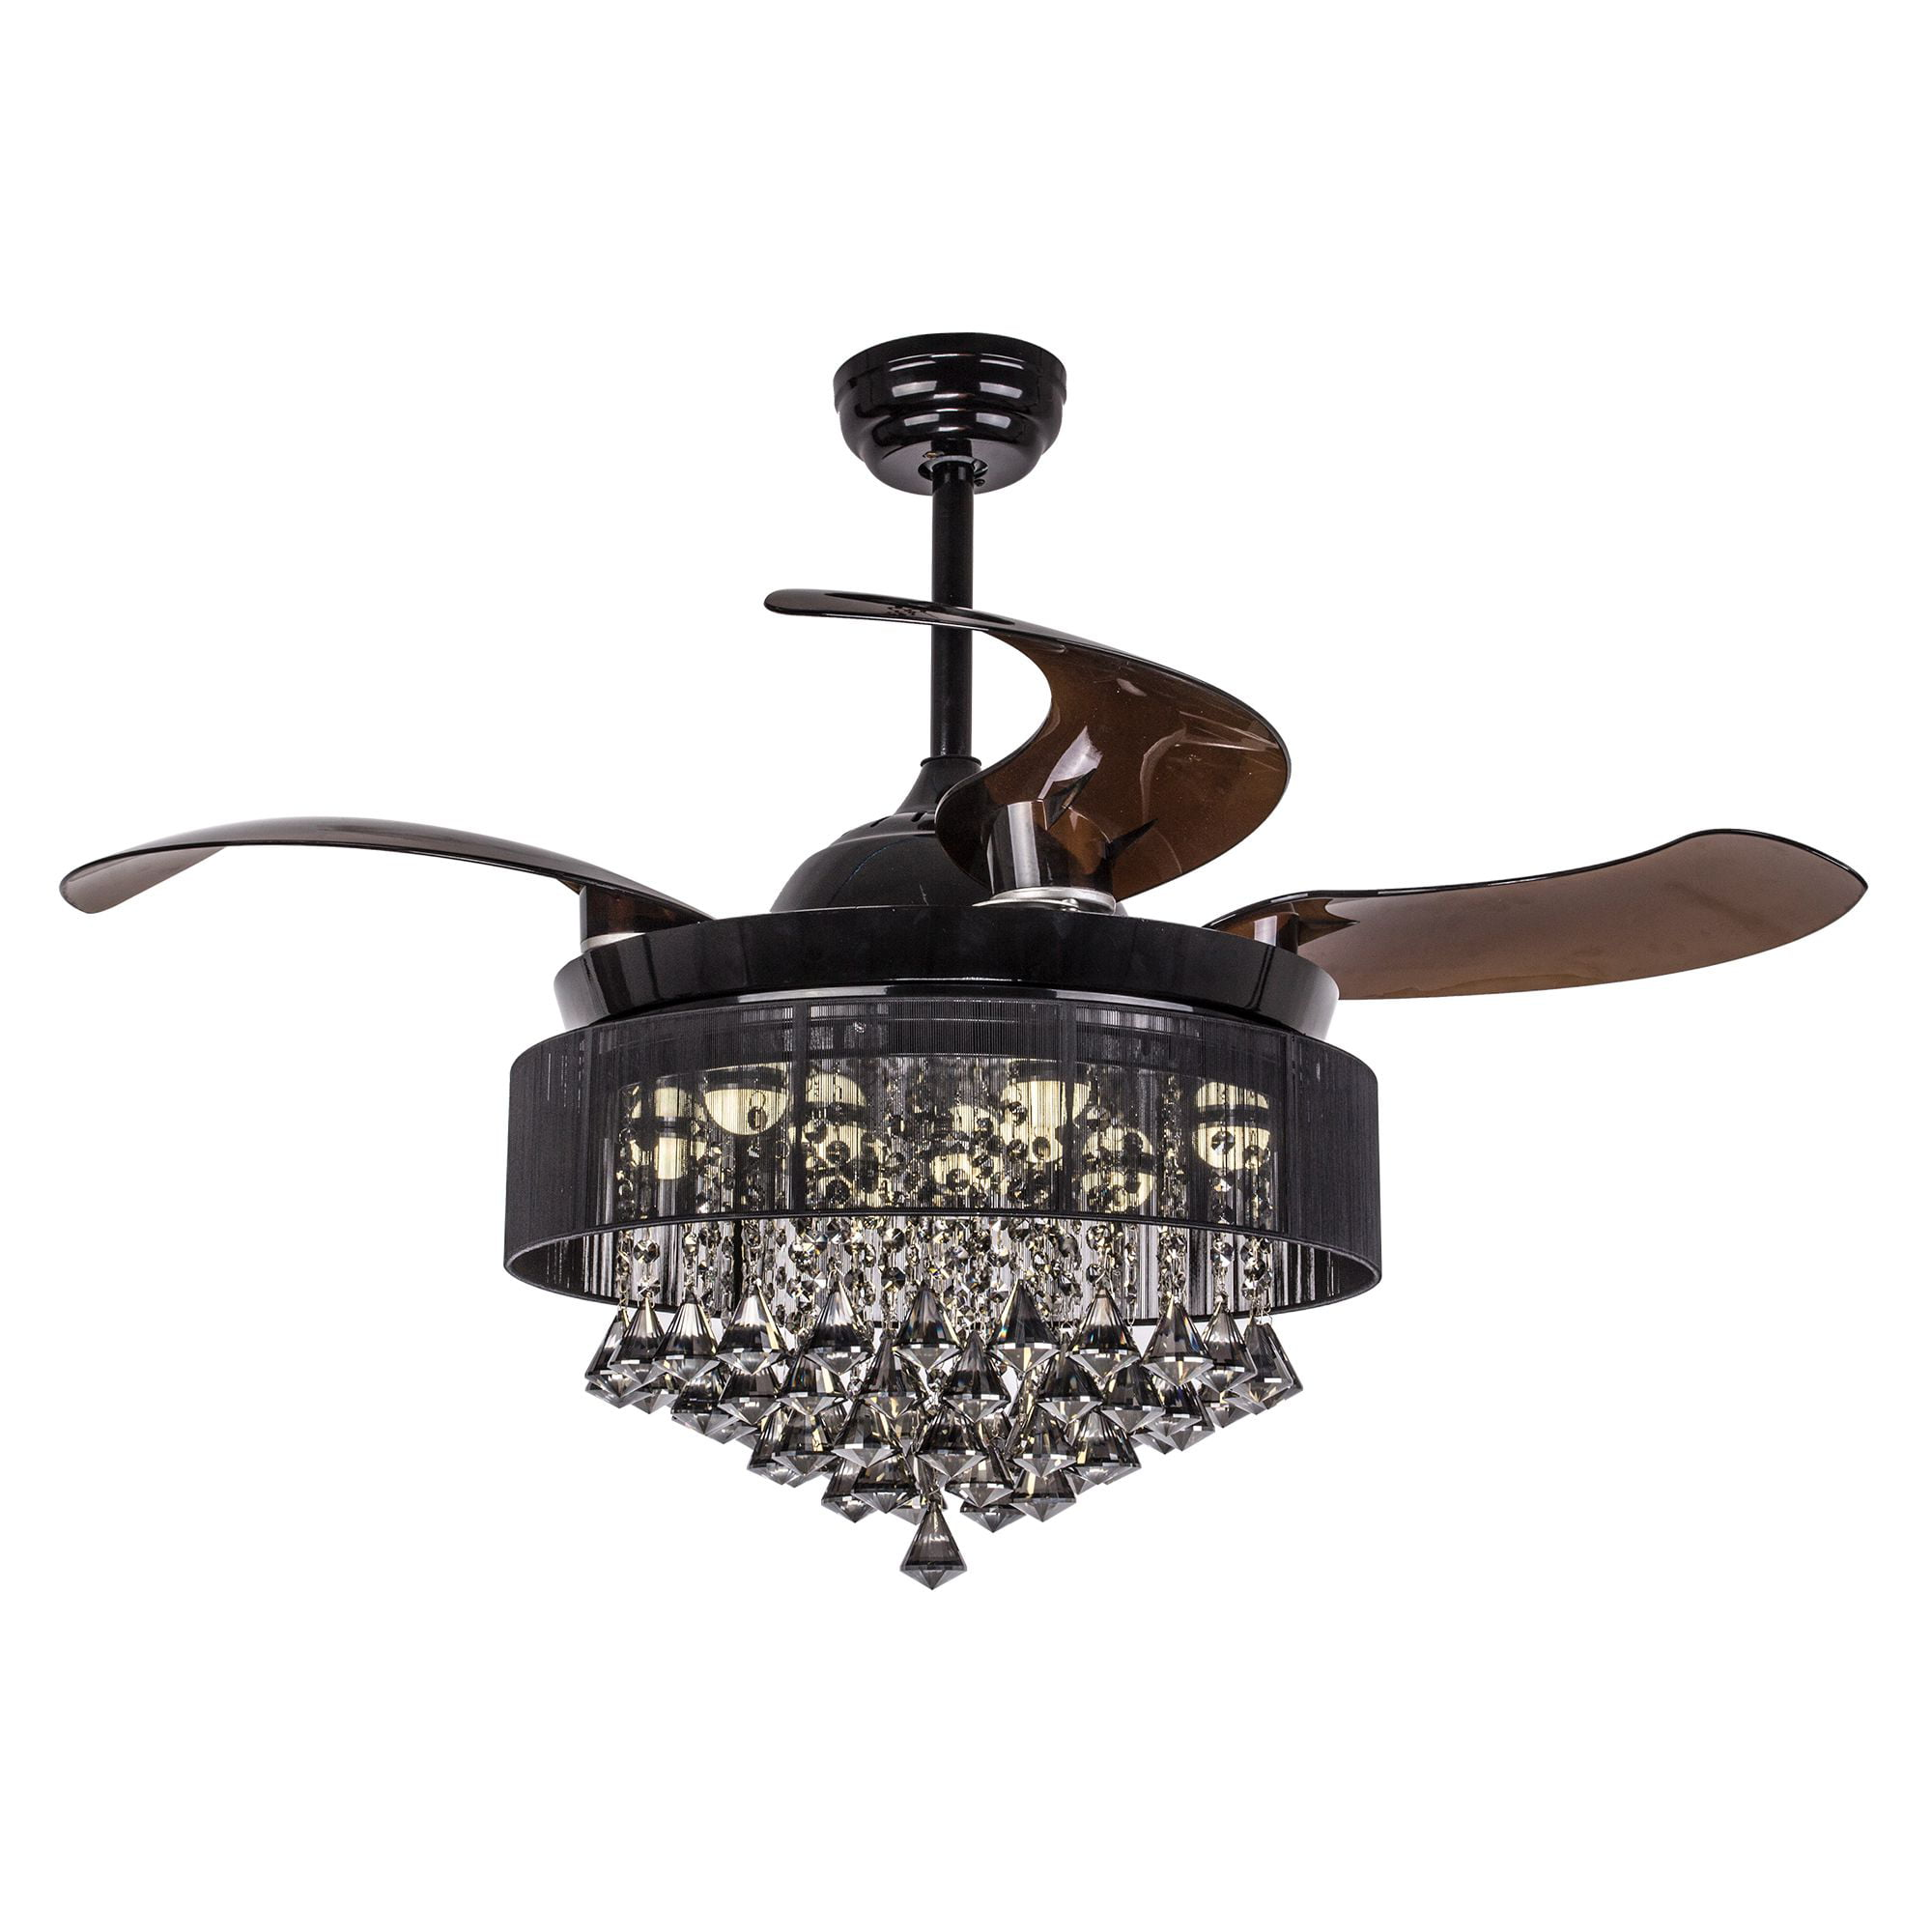 Modern Invisible Acrylic Leaf Led Ceiling Fans White/black Steel Led Ceiling Fan Lighting Dining Room Dimmable Ceiling Fixtures Ceiling Lights & Fans Ceiling Fans